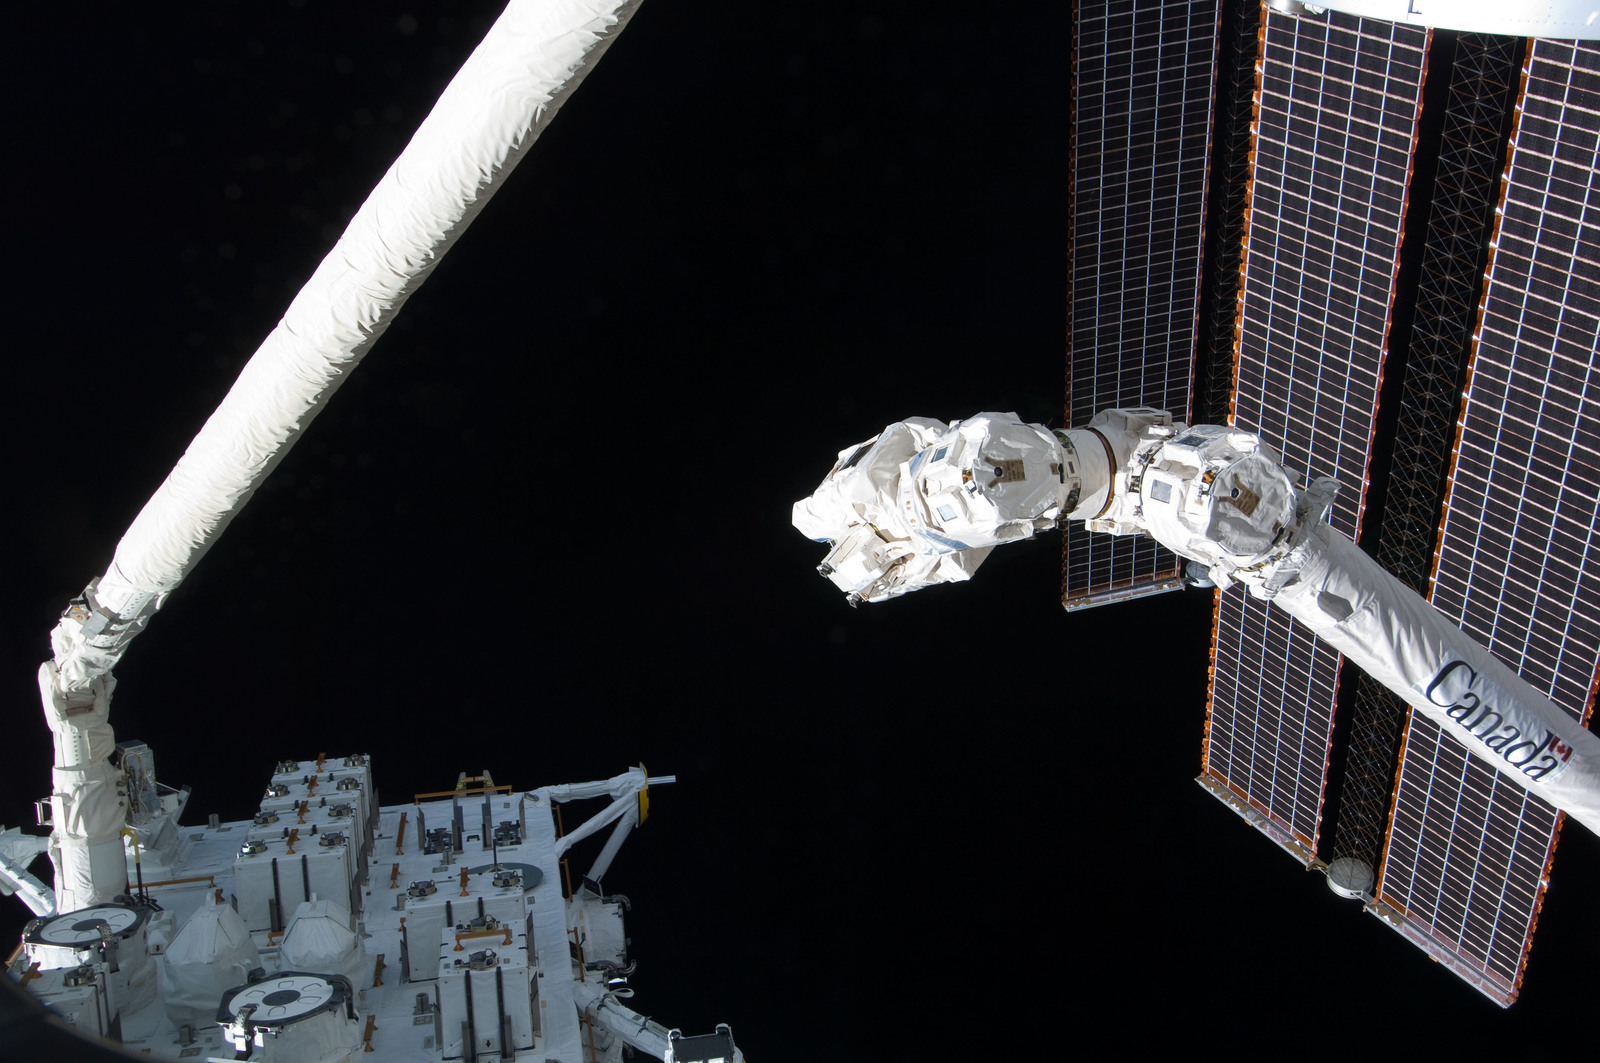 S127E006899 - STS-127 - SRMS handoff to the SSRMS during EVA-1 on STS-127 / Expedition 20 Joint Operations